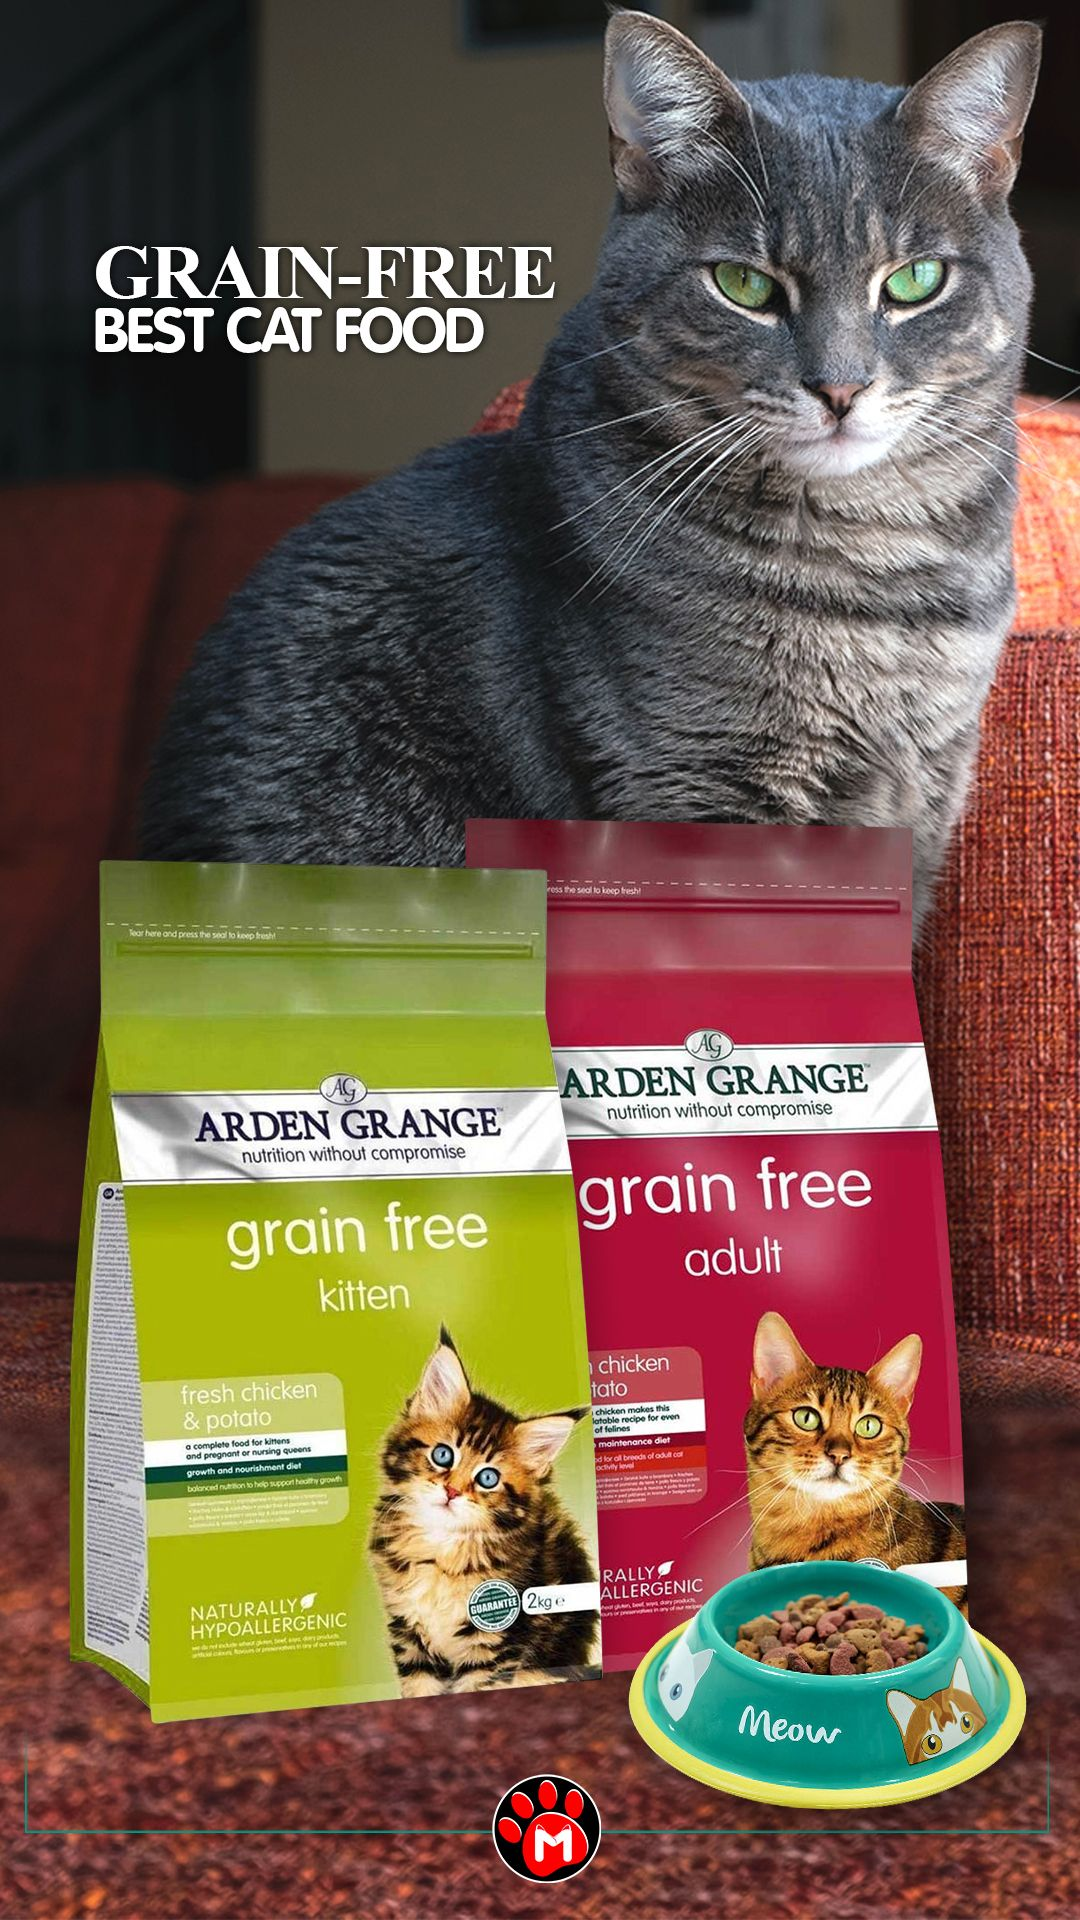 Grain Free Best Cat Food Arden Grange In 2020 Best Cat Food Cat Food Cats